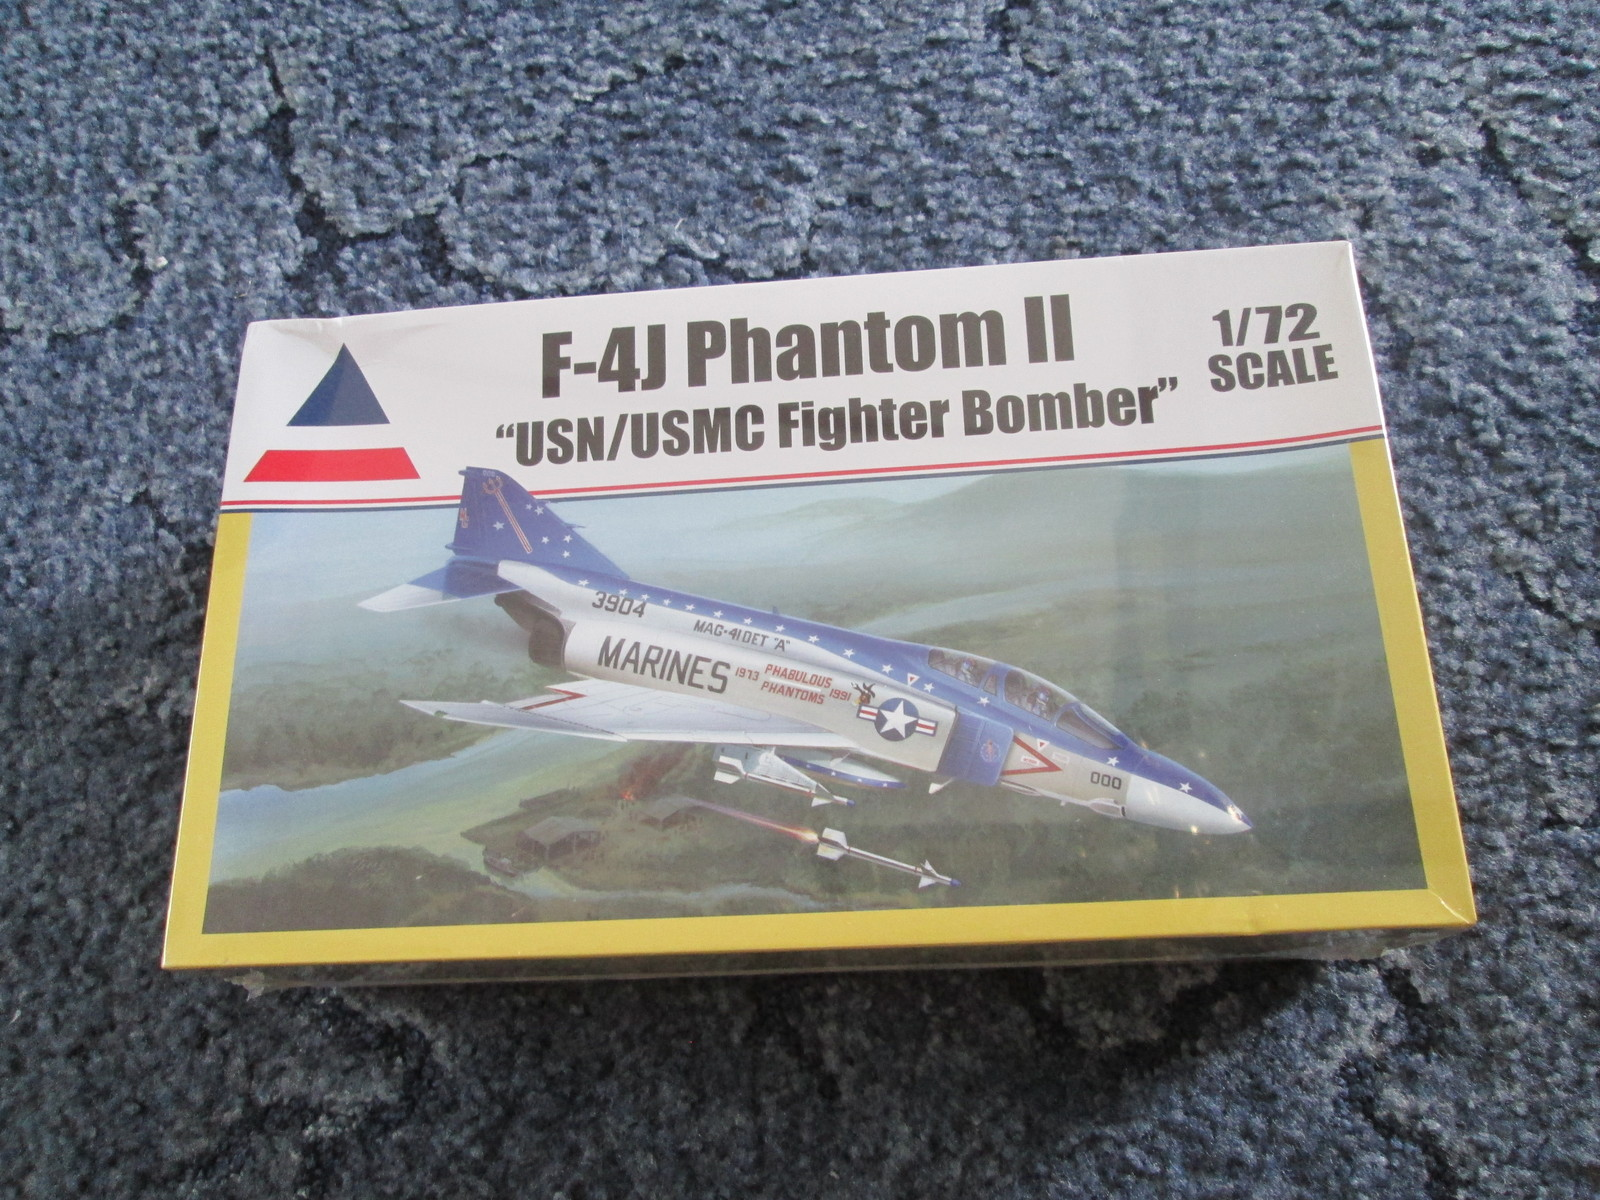 Accurate Miniatures F-4J Phantom II USN/USMC Fighter Bomber 1/72 scale